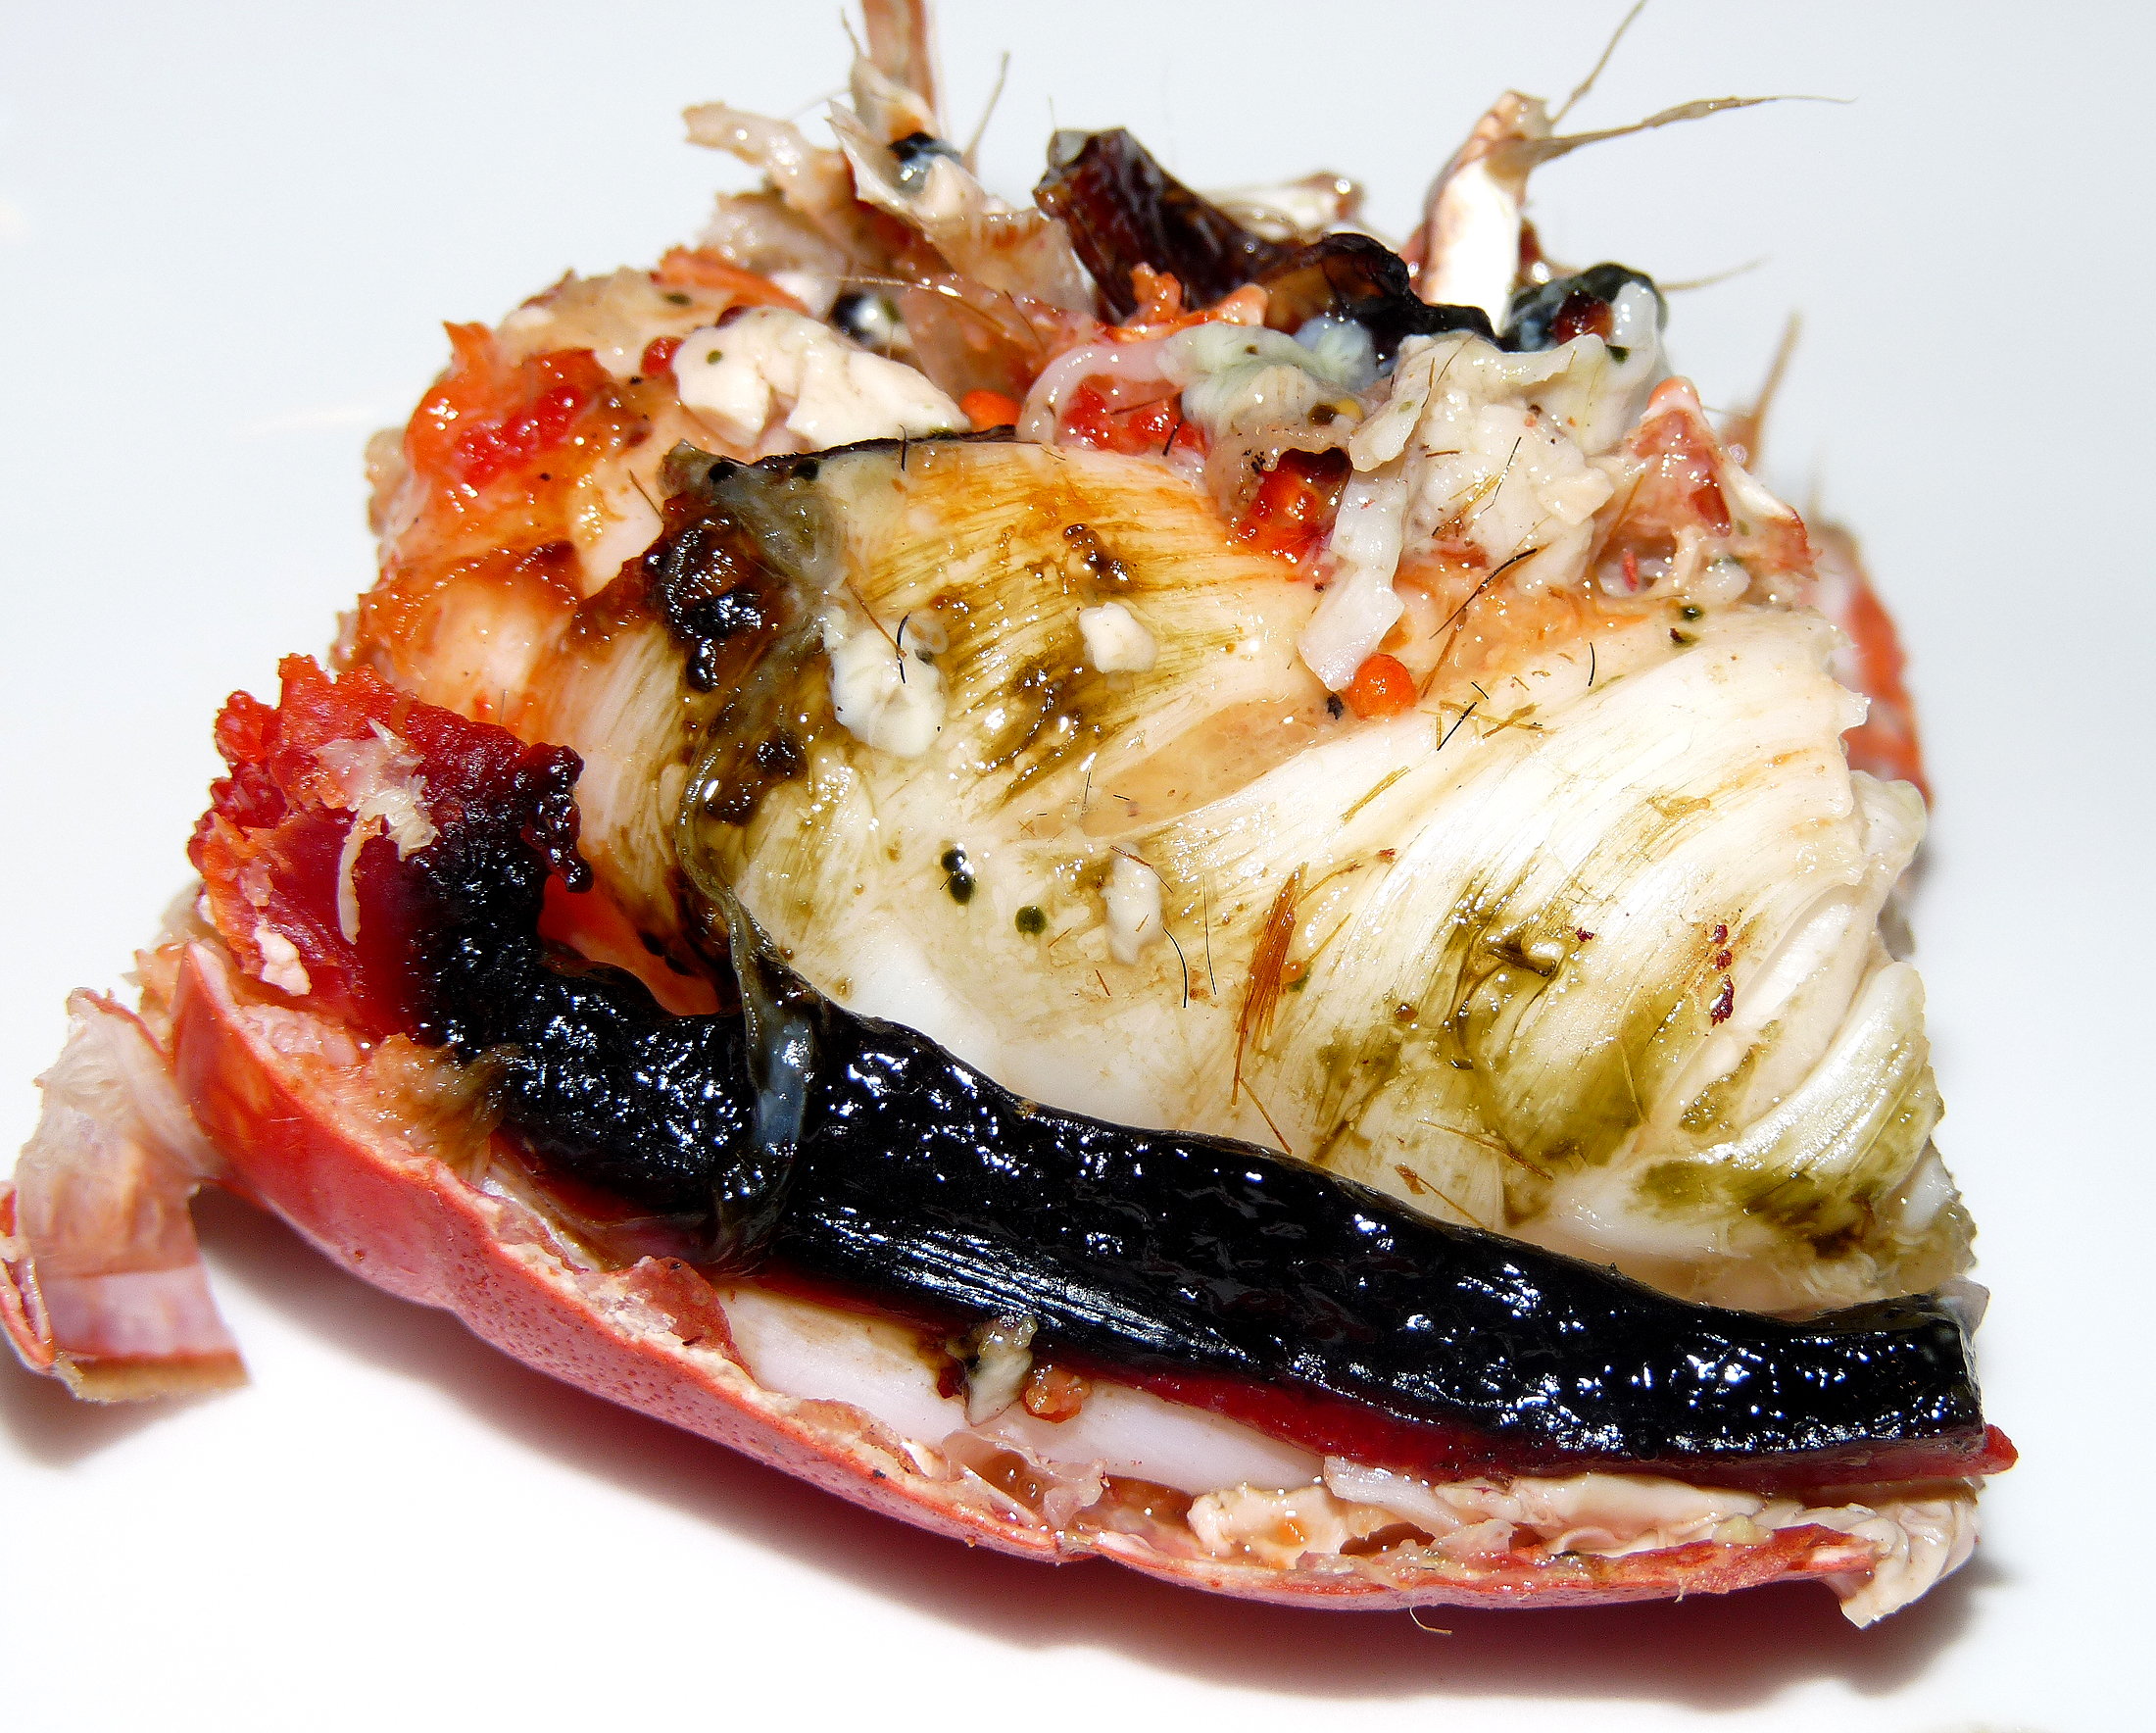 Star Crab with two kinds of caviar and vanilla. (Manos Angelakis)